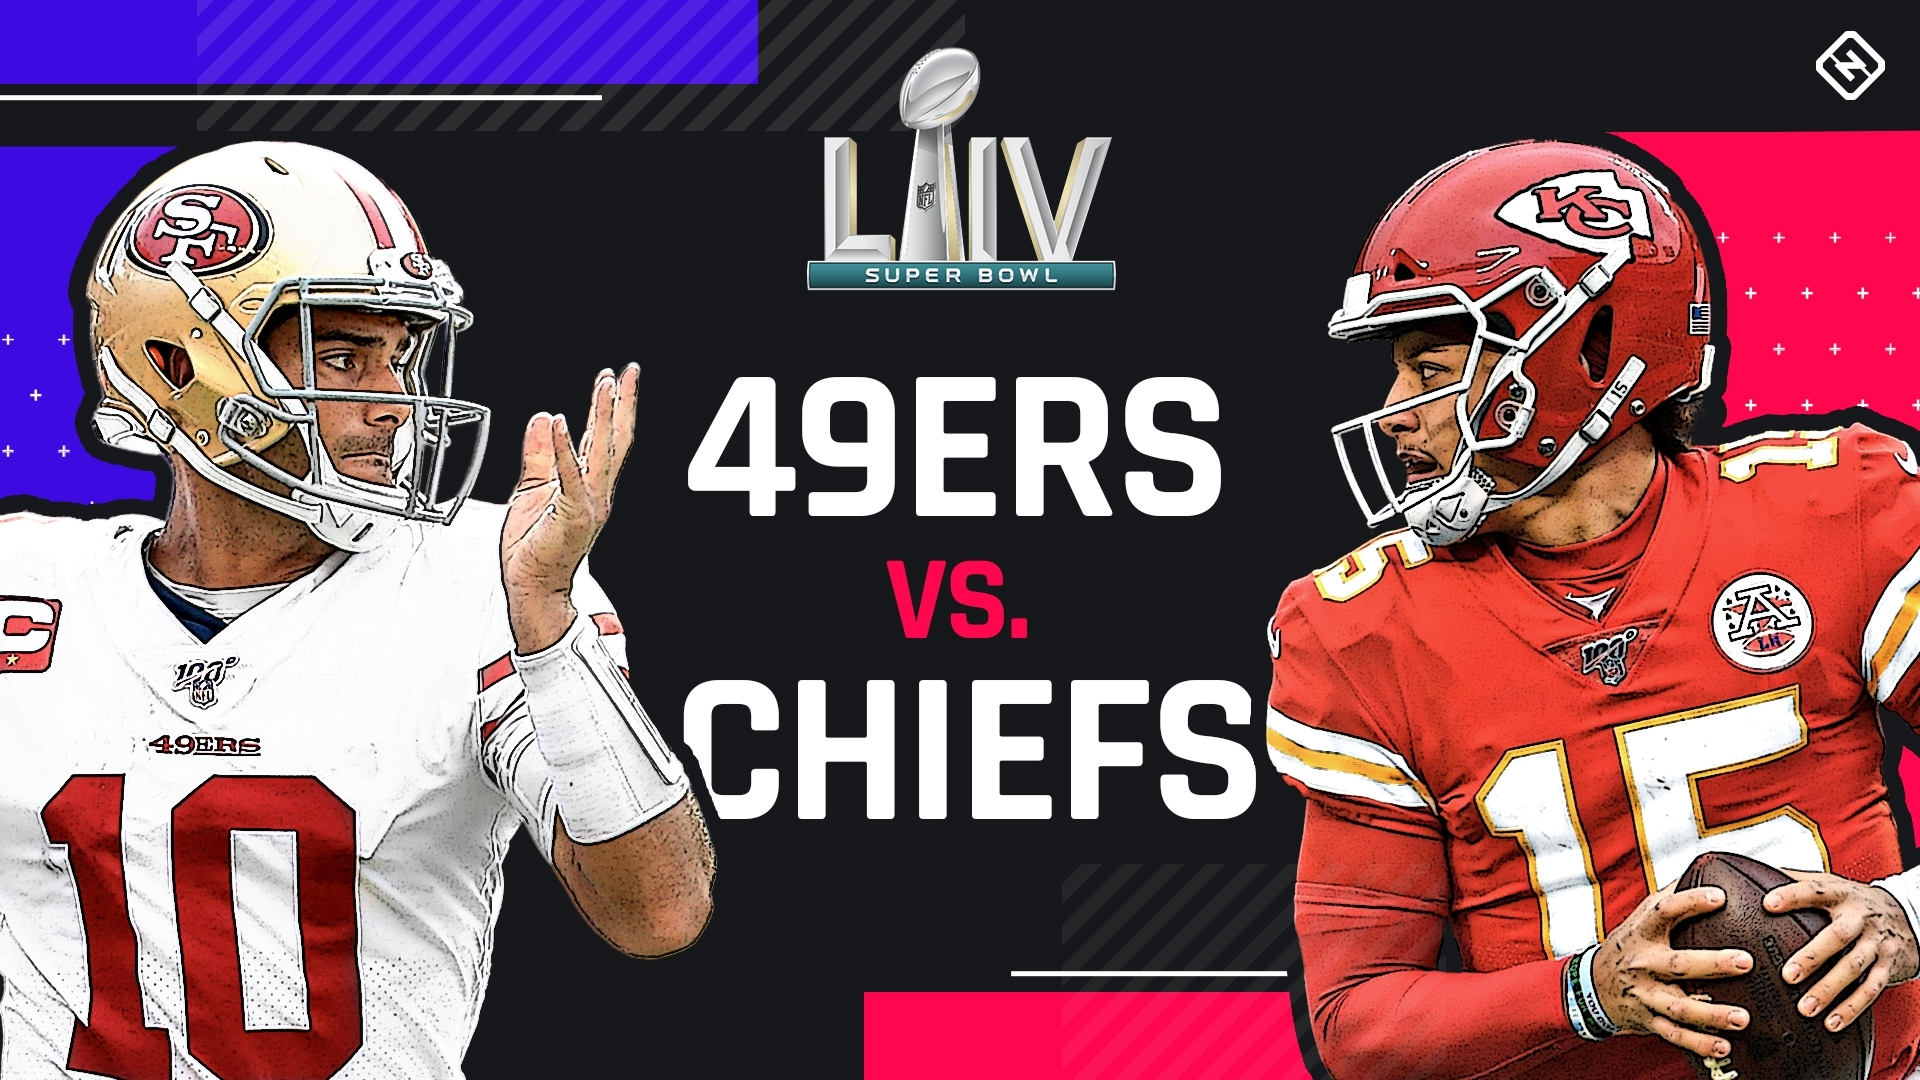 What Time Does The Super Bowl Start Today? Kickoff, Tv pertaining to Super Bowl Channel Miami